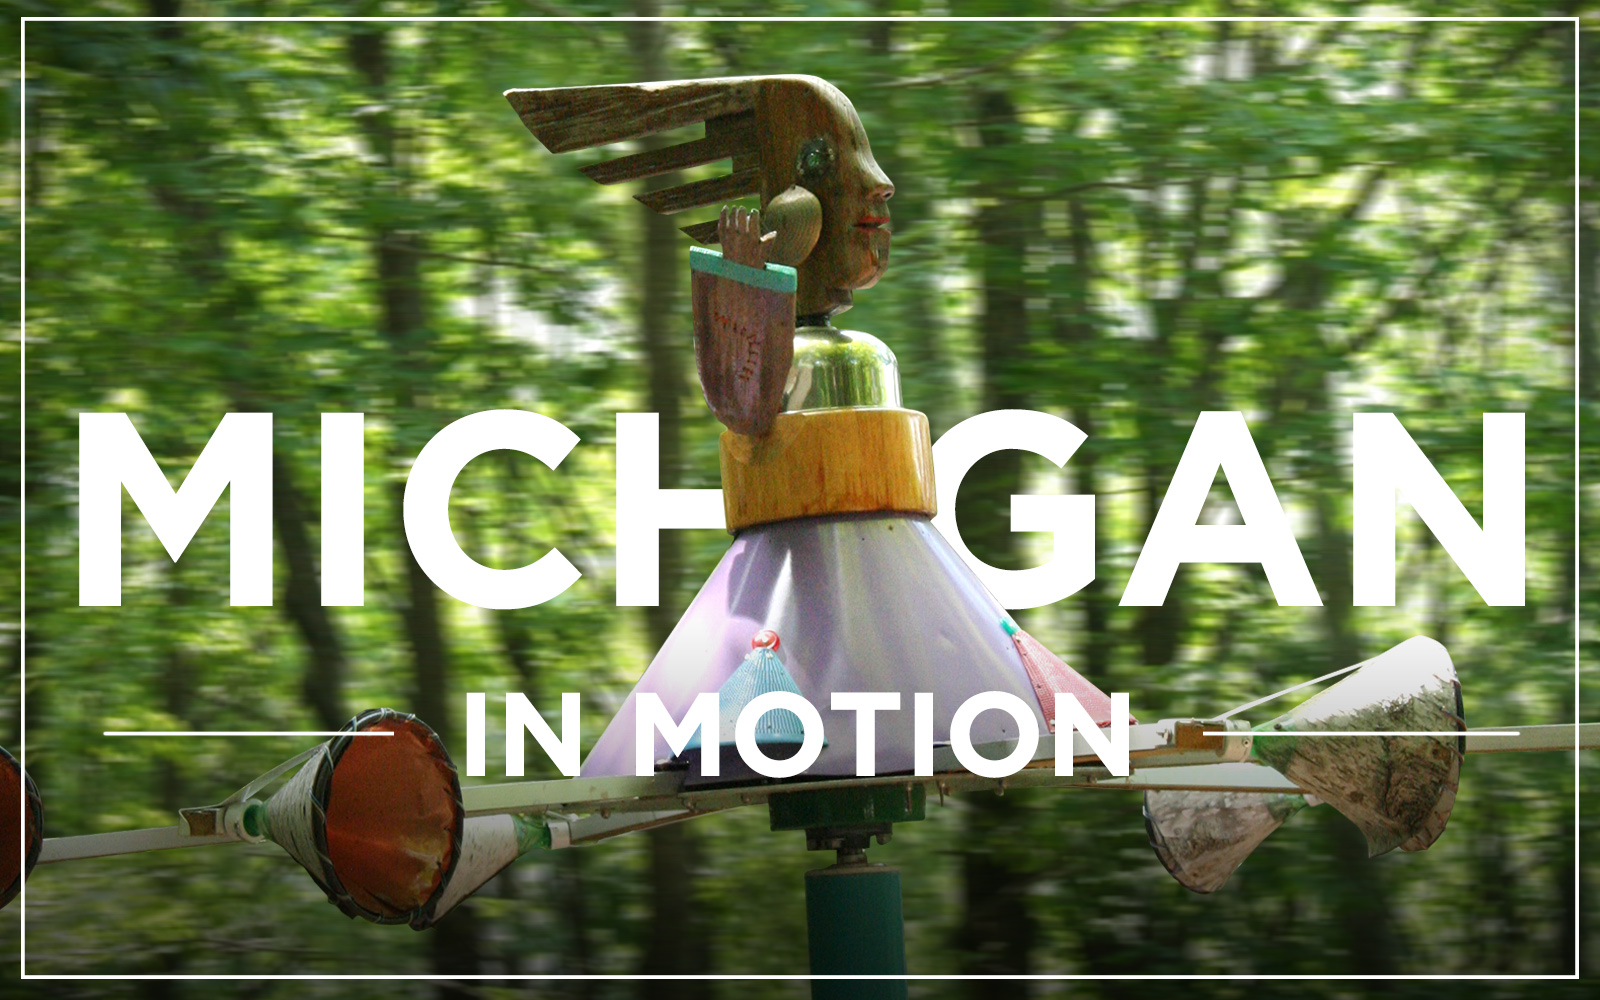 Michigan in Motion